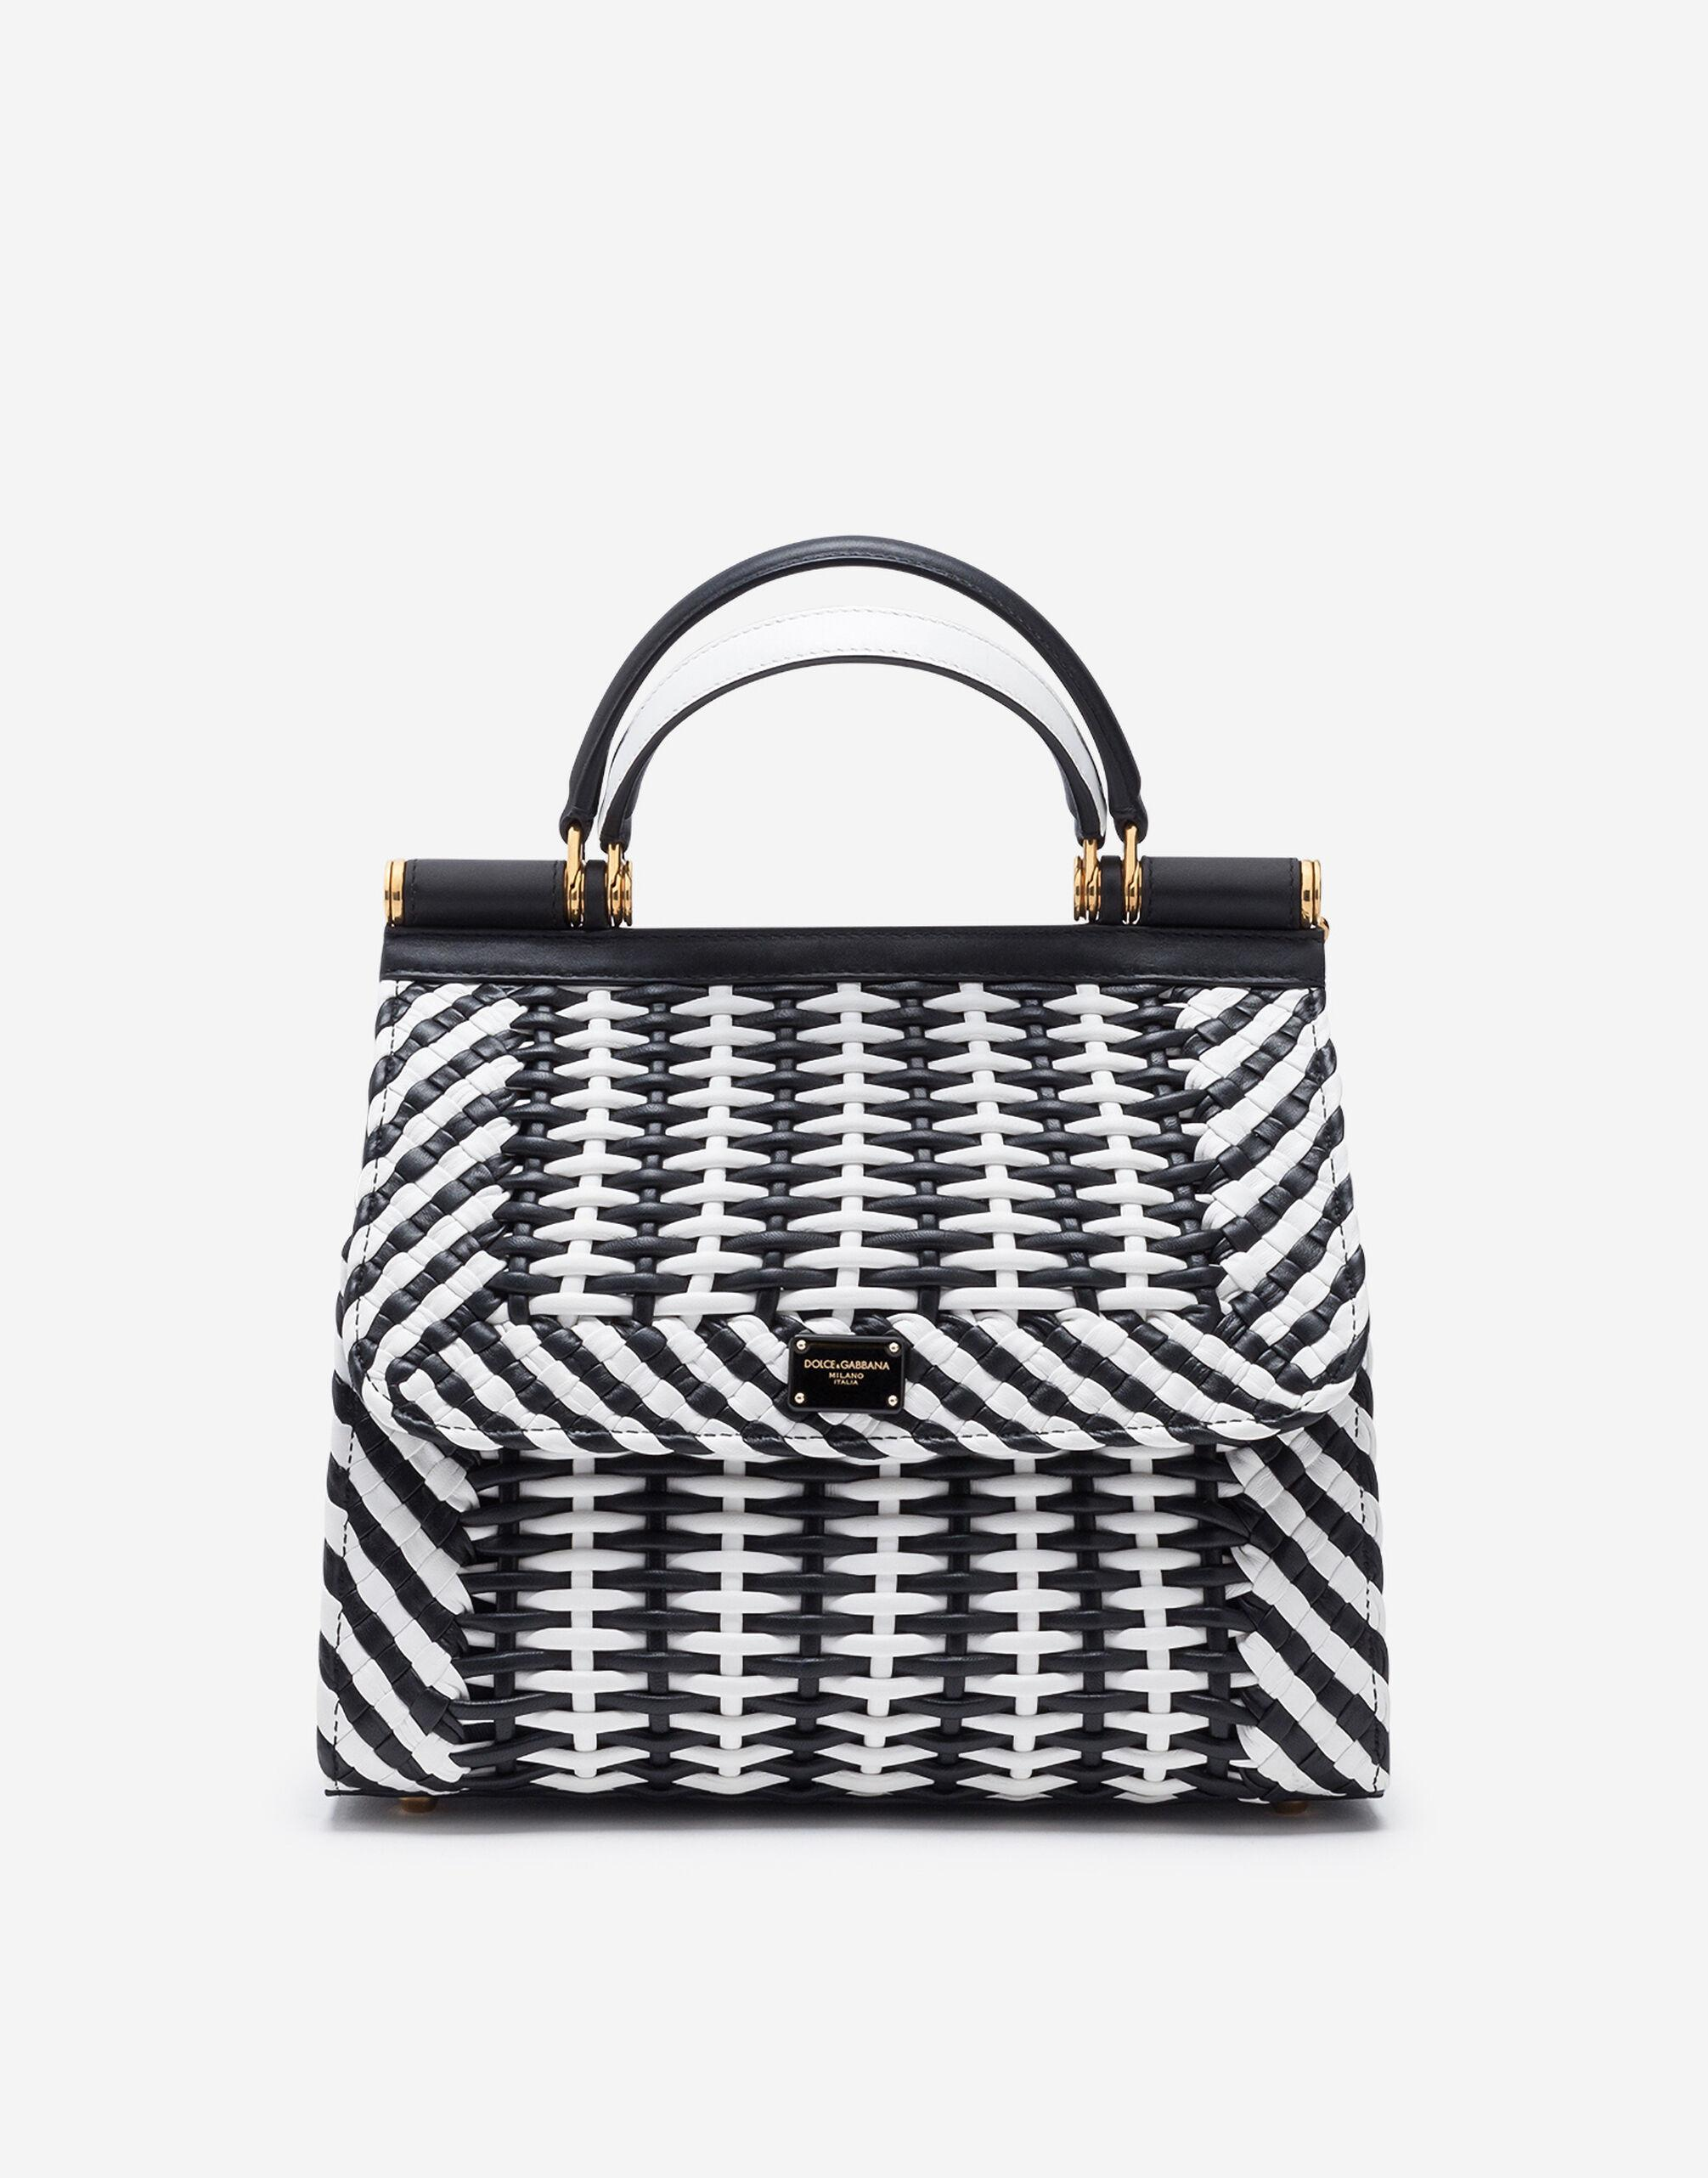 Medium Sicily 58 bag in woven nappa leather